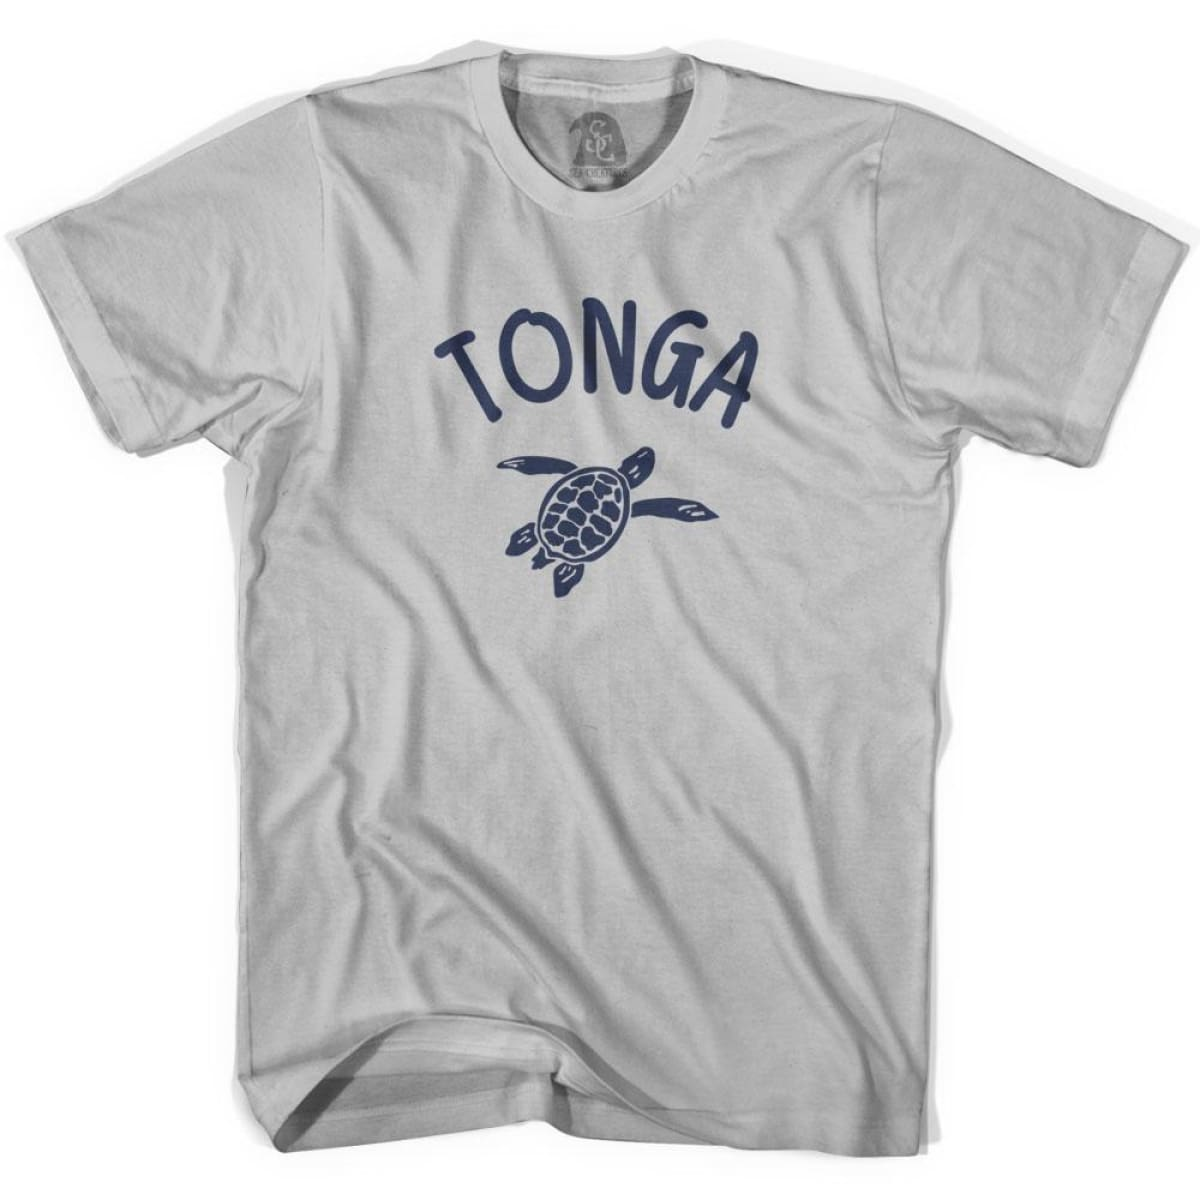 Tonga Beach Sea Turtle Adult Cotton T-shirt - Cool Grey / Adult Small - Turtle T-shirts